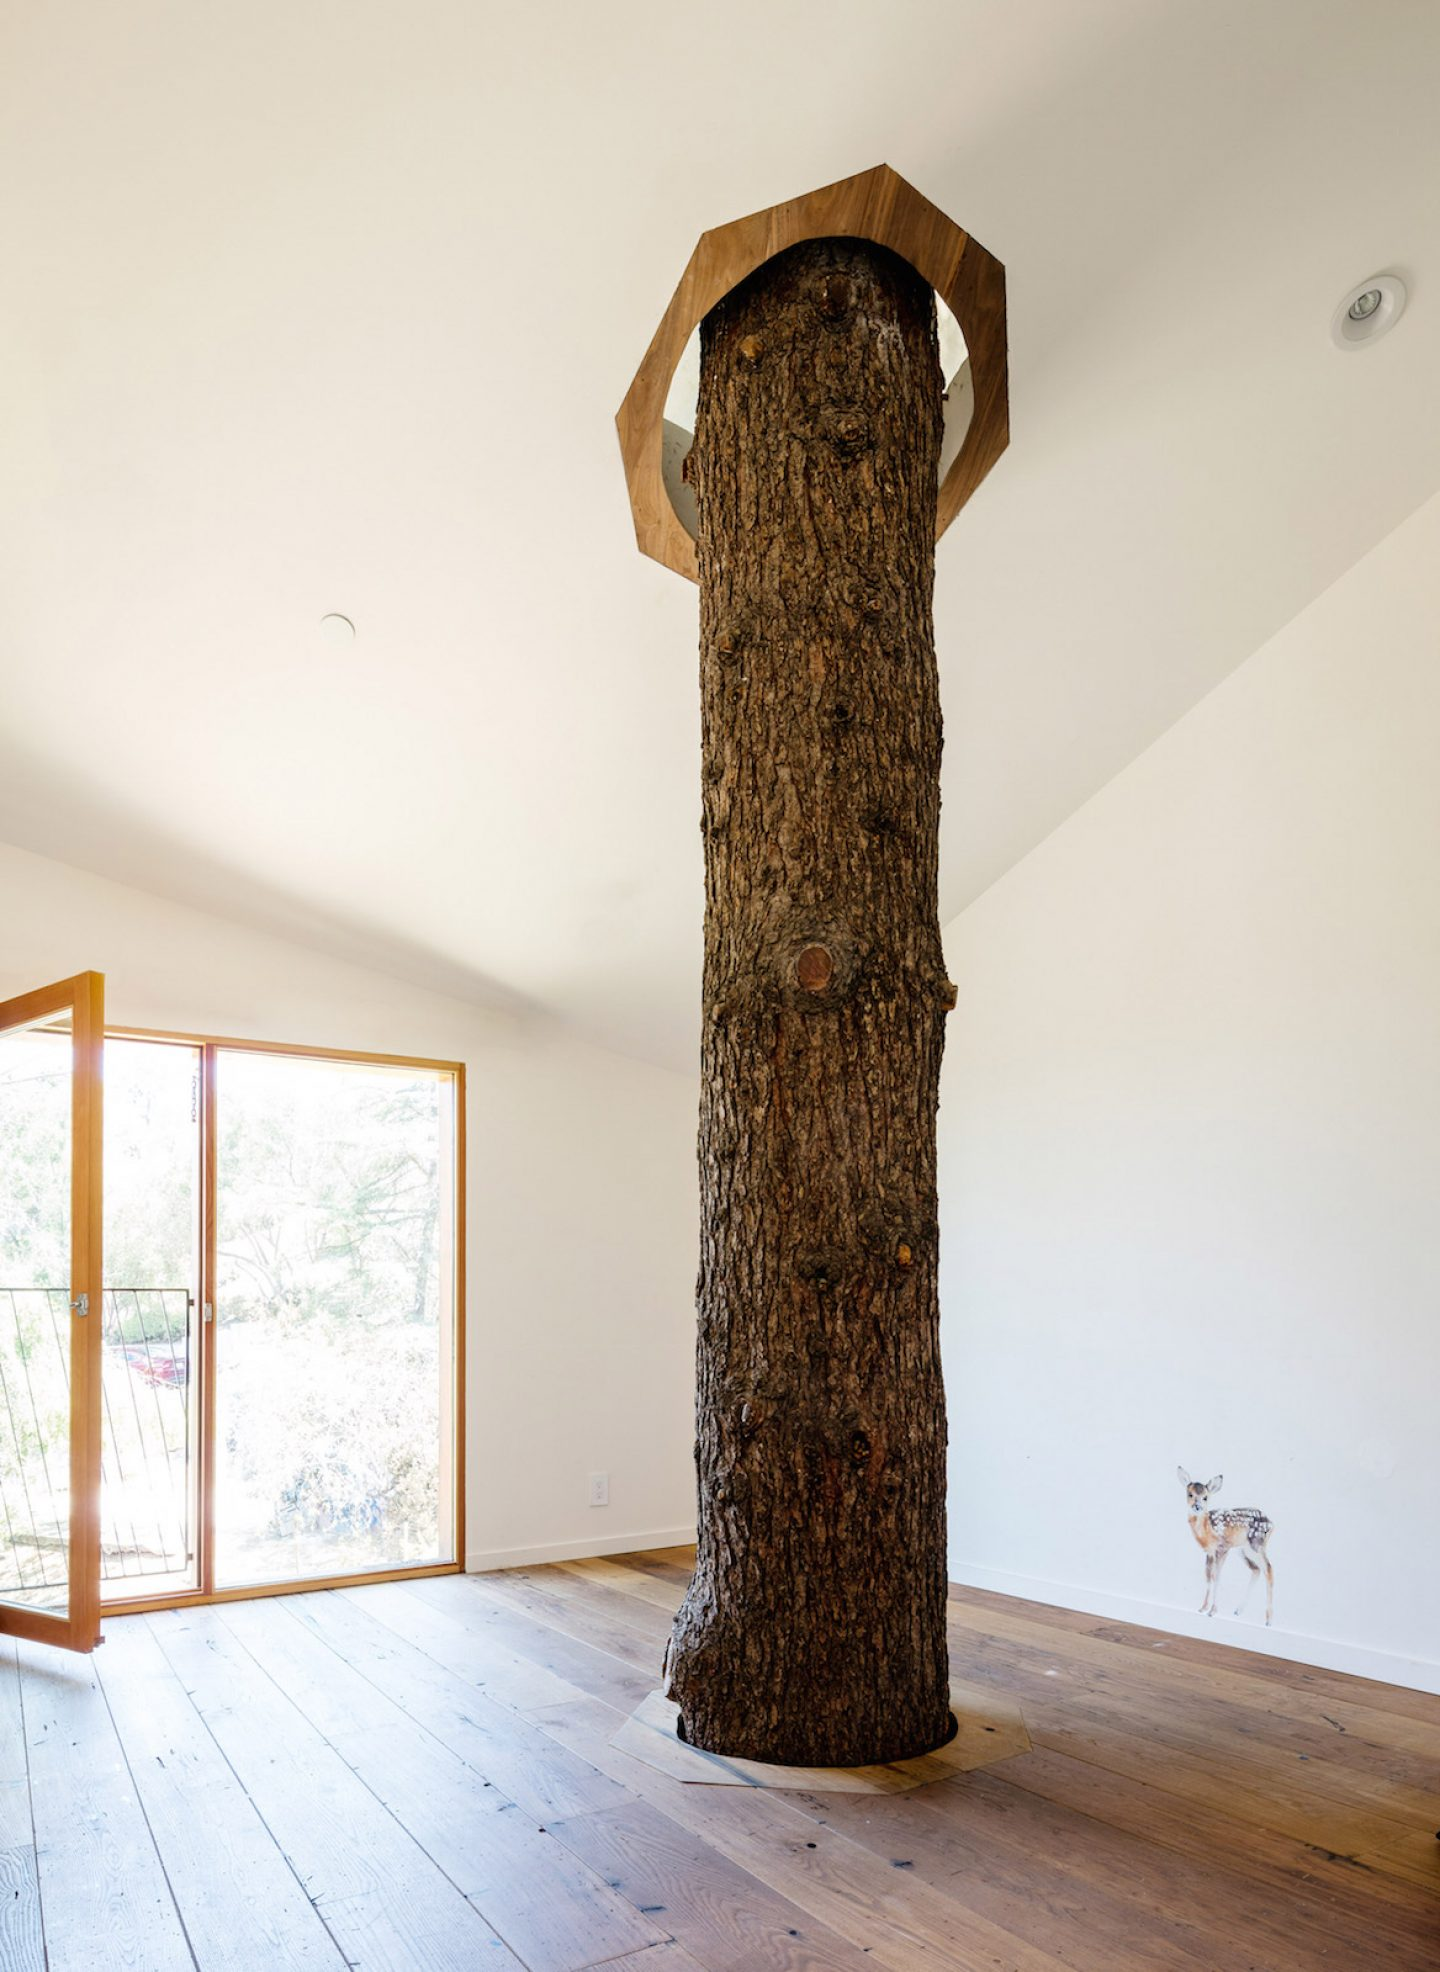 architecture_houseintrees_anonymousarchitects_6